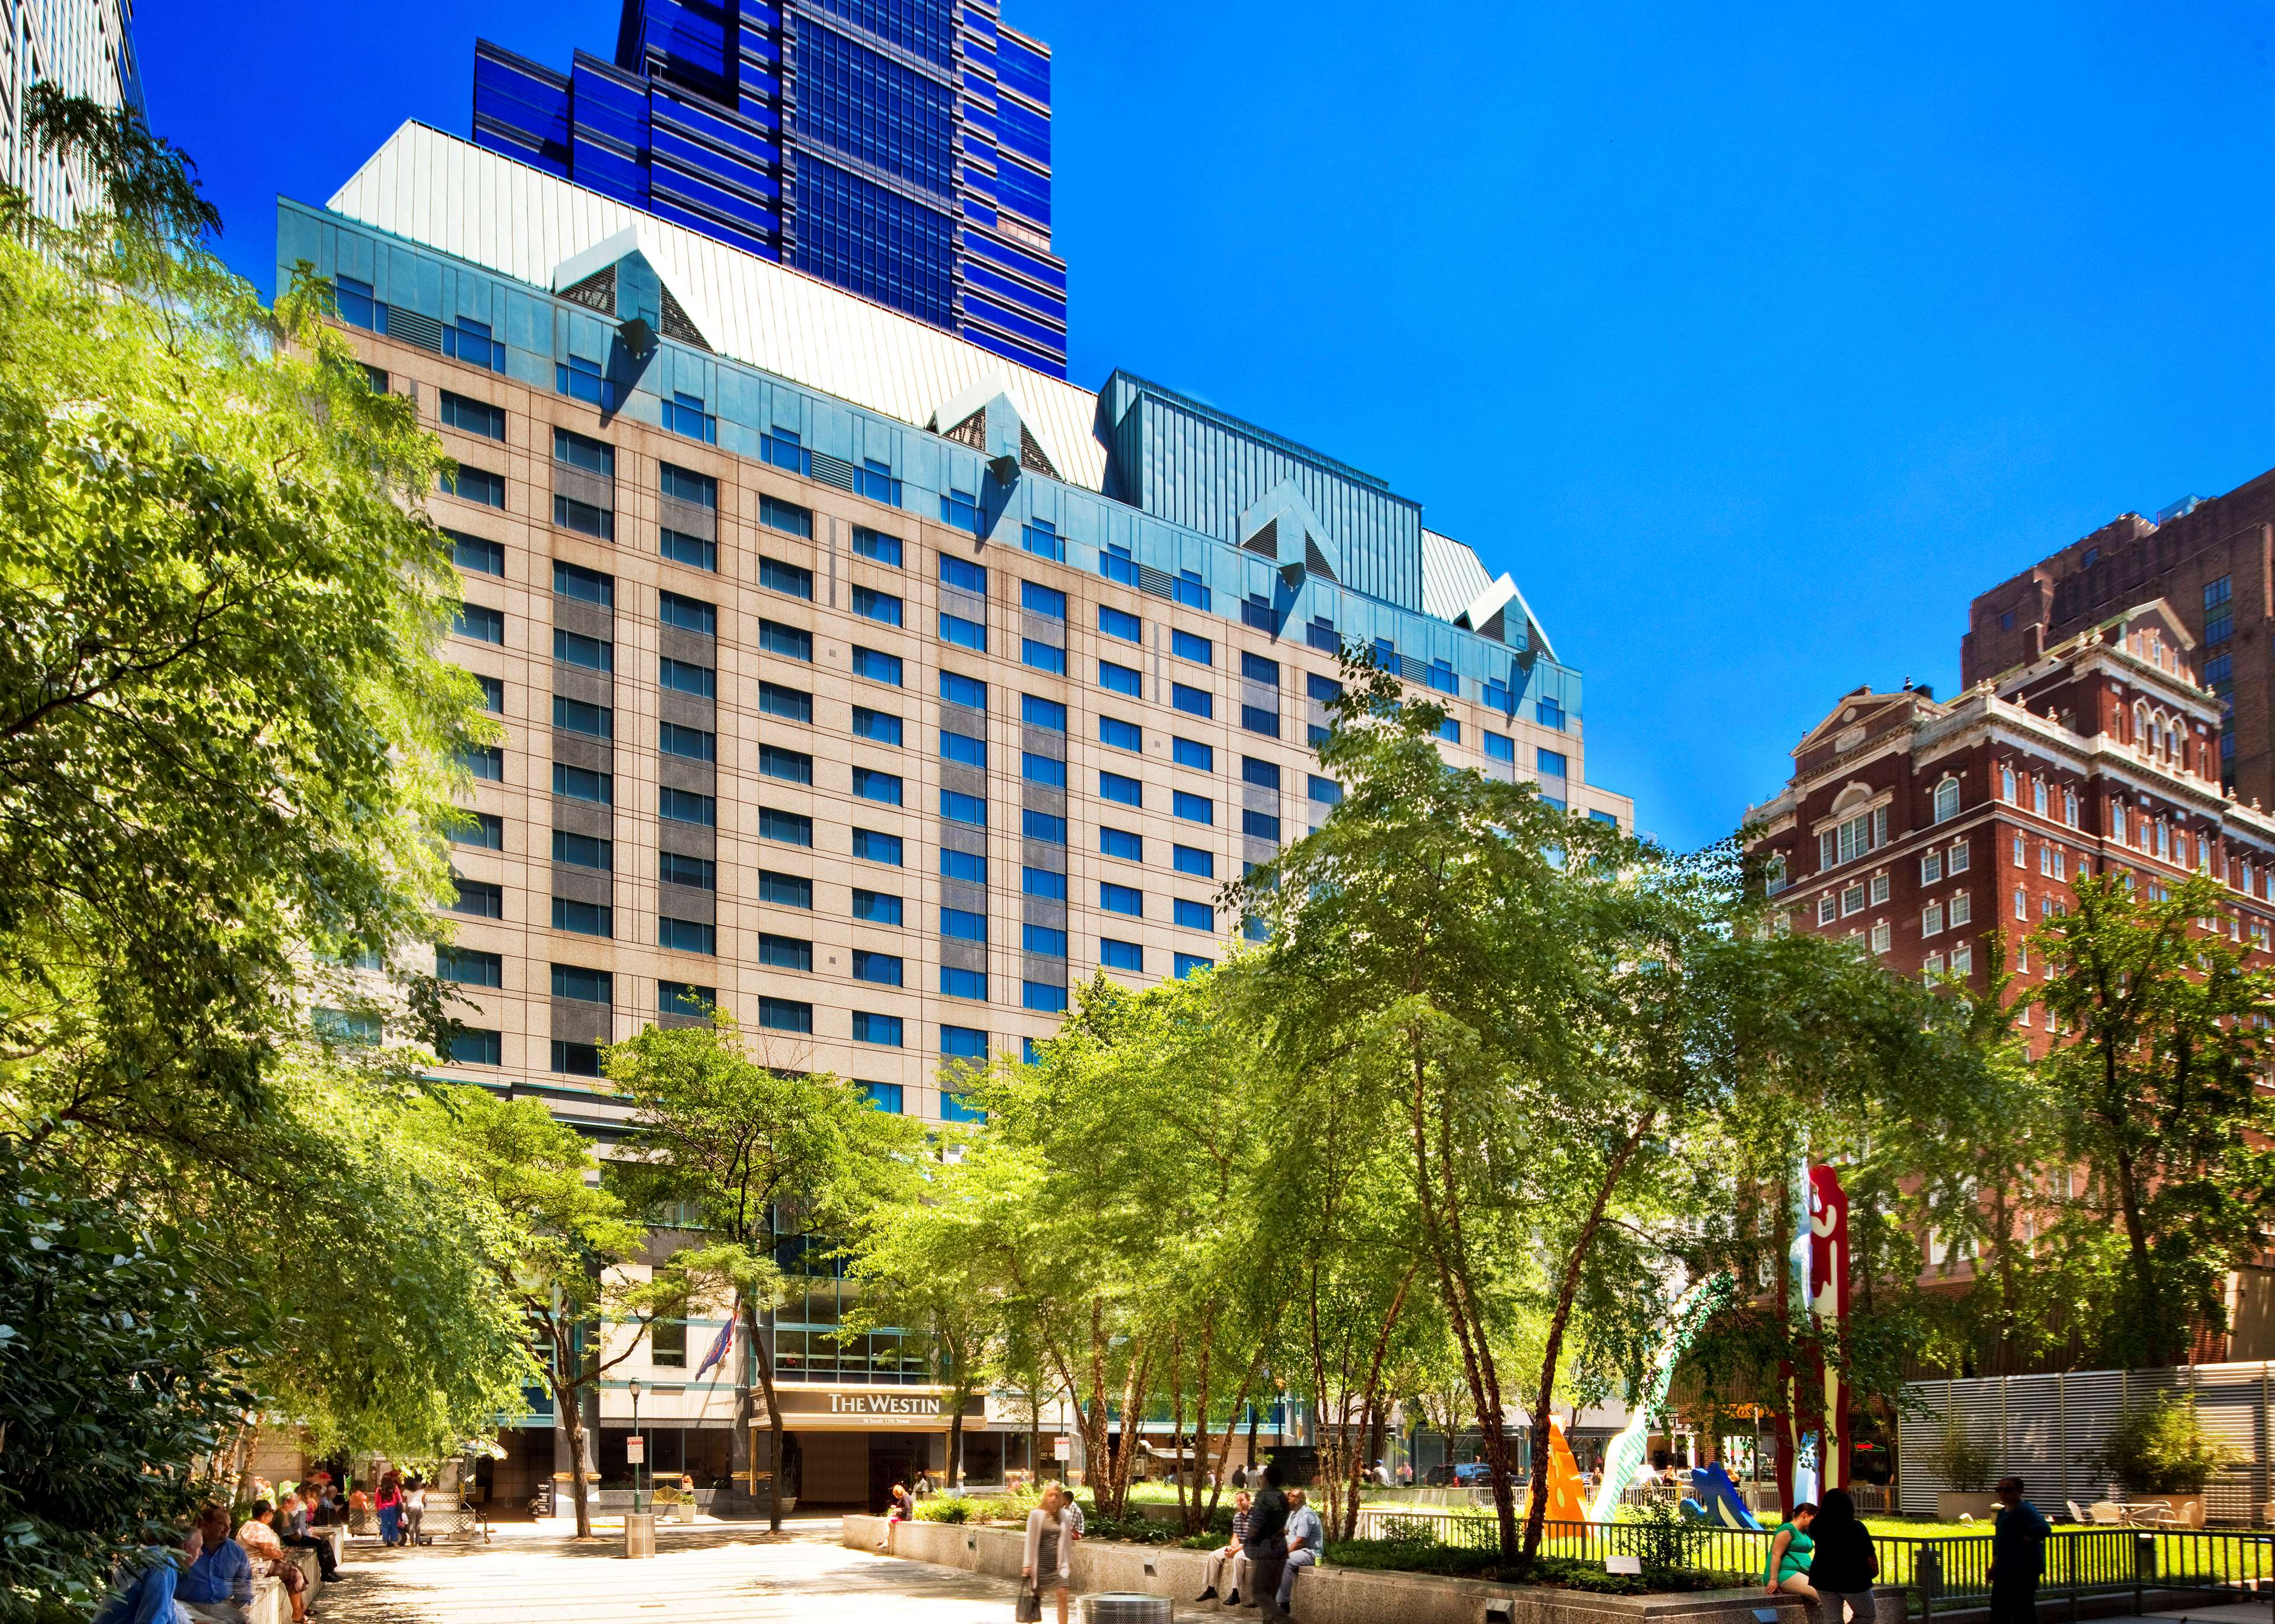 Westin Deals Designed To Leave You Feeling Better Than Ever Wonder Awaits With Westin Family With the Westin Family Package, you can enjoy up to 50% off your second room with connecting rooms based on availability.